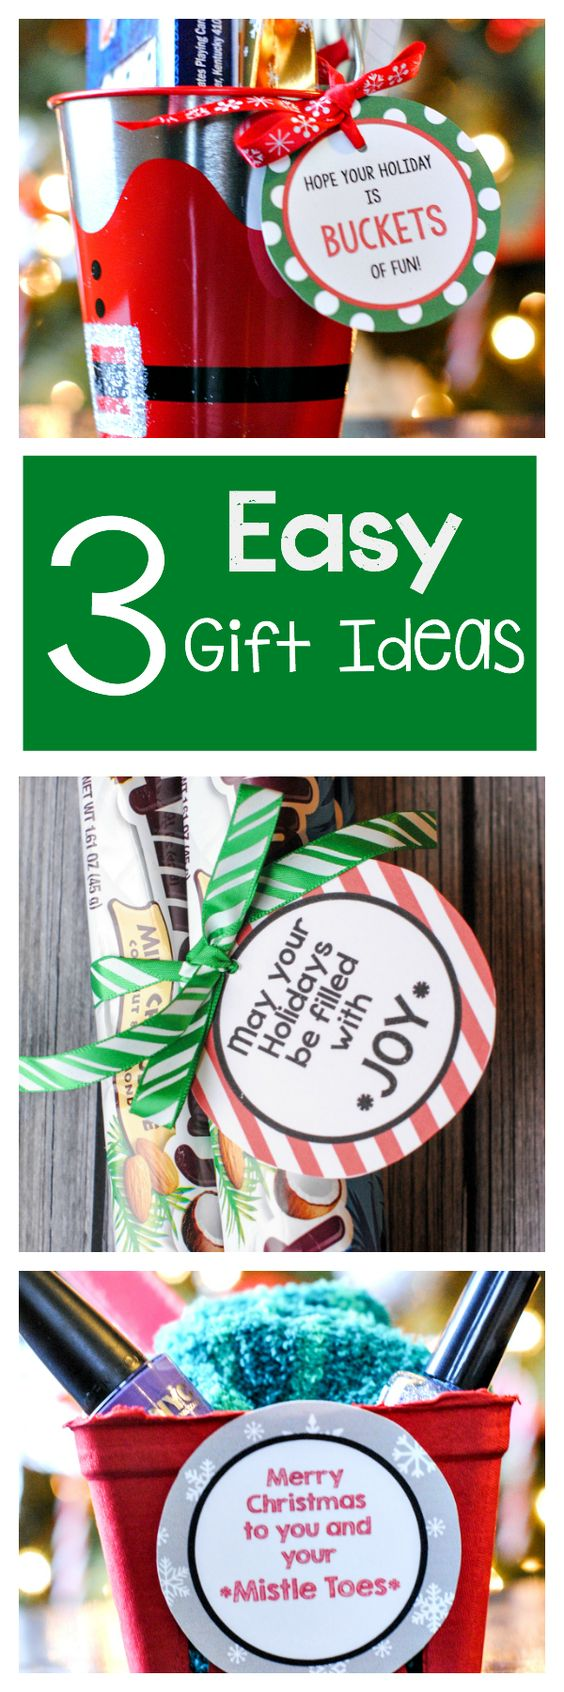 3 Easy Gift Ideas with Free Printable Gift Tags! Grab a bucket, some Almond Joy candies or some Nail Polish and pedicure supplies and attach her cute FREE Printable Gift tags with these cute ideas! | Crazy Little Projects #christmasprintables #freechristmasprintables #christmascards #christmasgifttags #printablechristmascards #printablechristmasgifttags #christmaspapercrafts